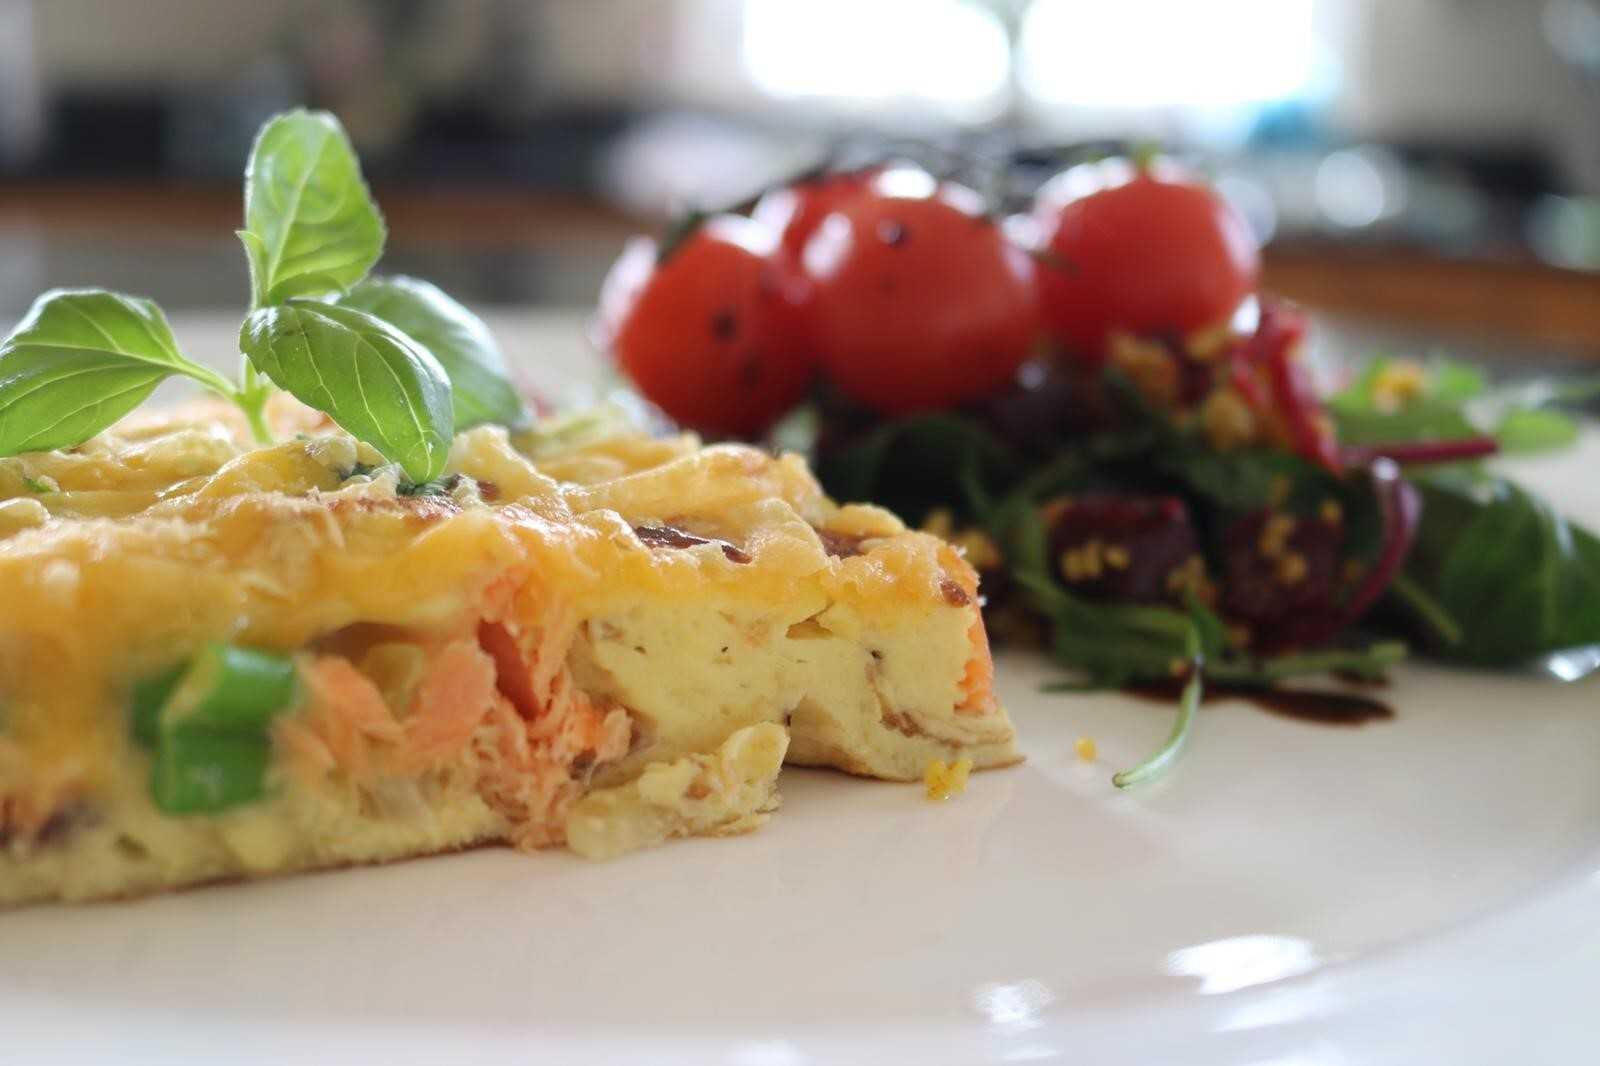 Barbecued Rainbow Trout Spanish Omelette by Siobhán Devereux Doyle